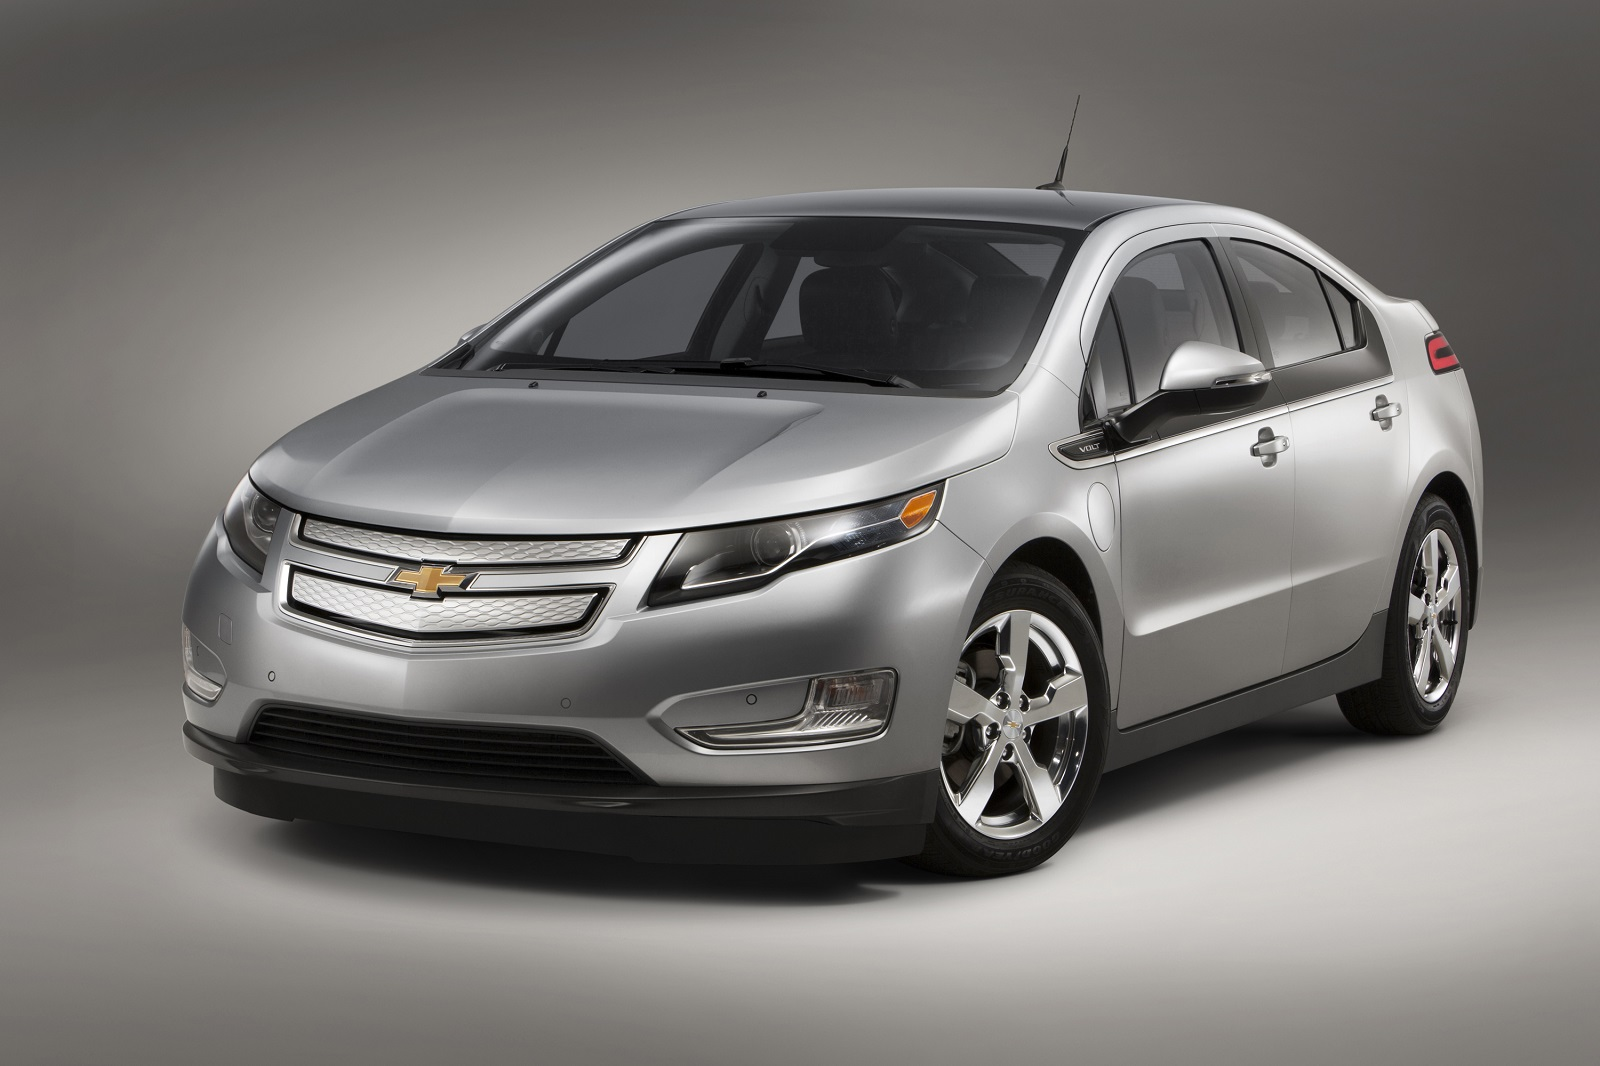 2015 chevy volt big clearance sale before new 2016 model includes 249 lease. Black Bedroom Furniture Sets. Home Design Ideas